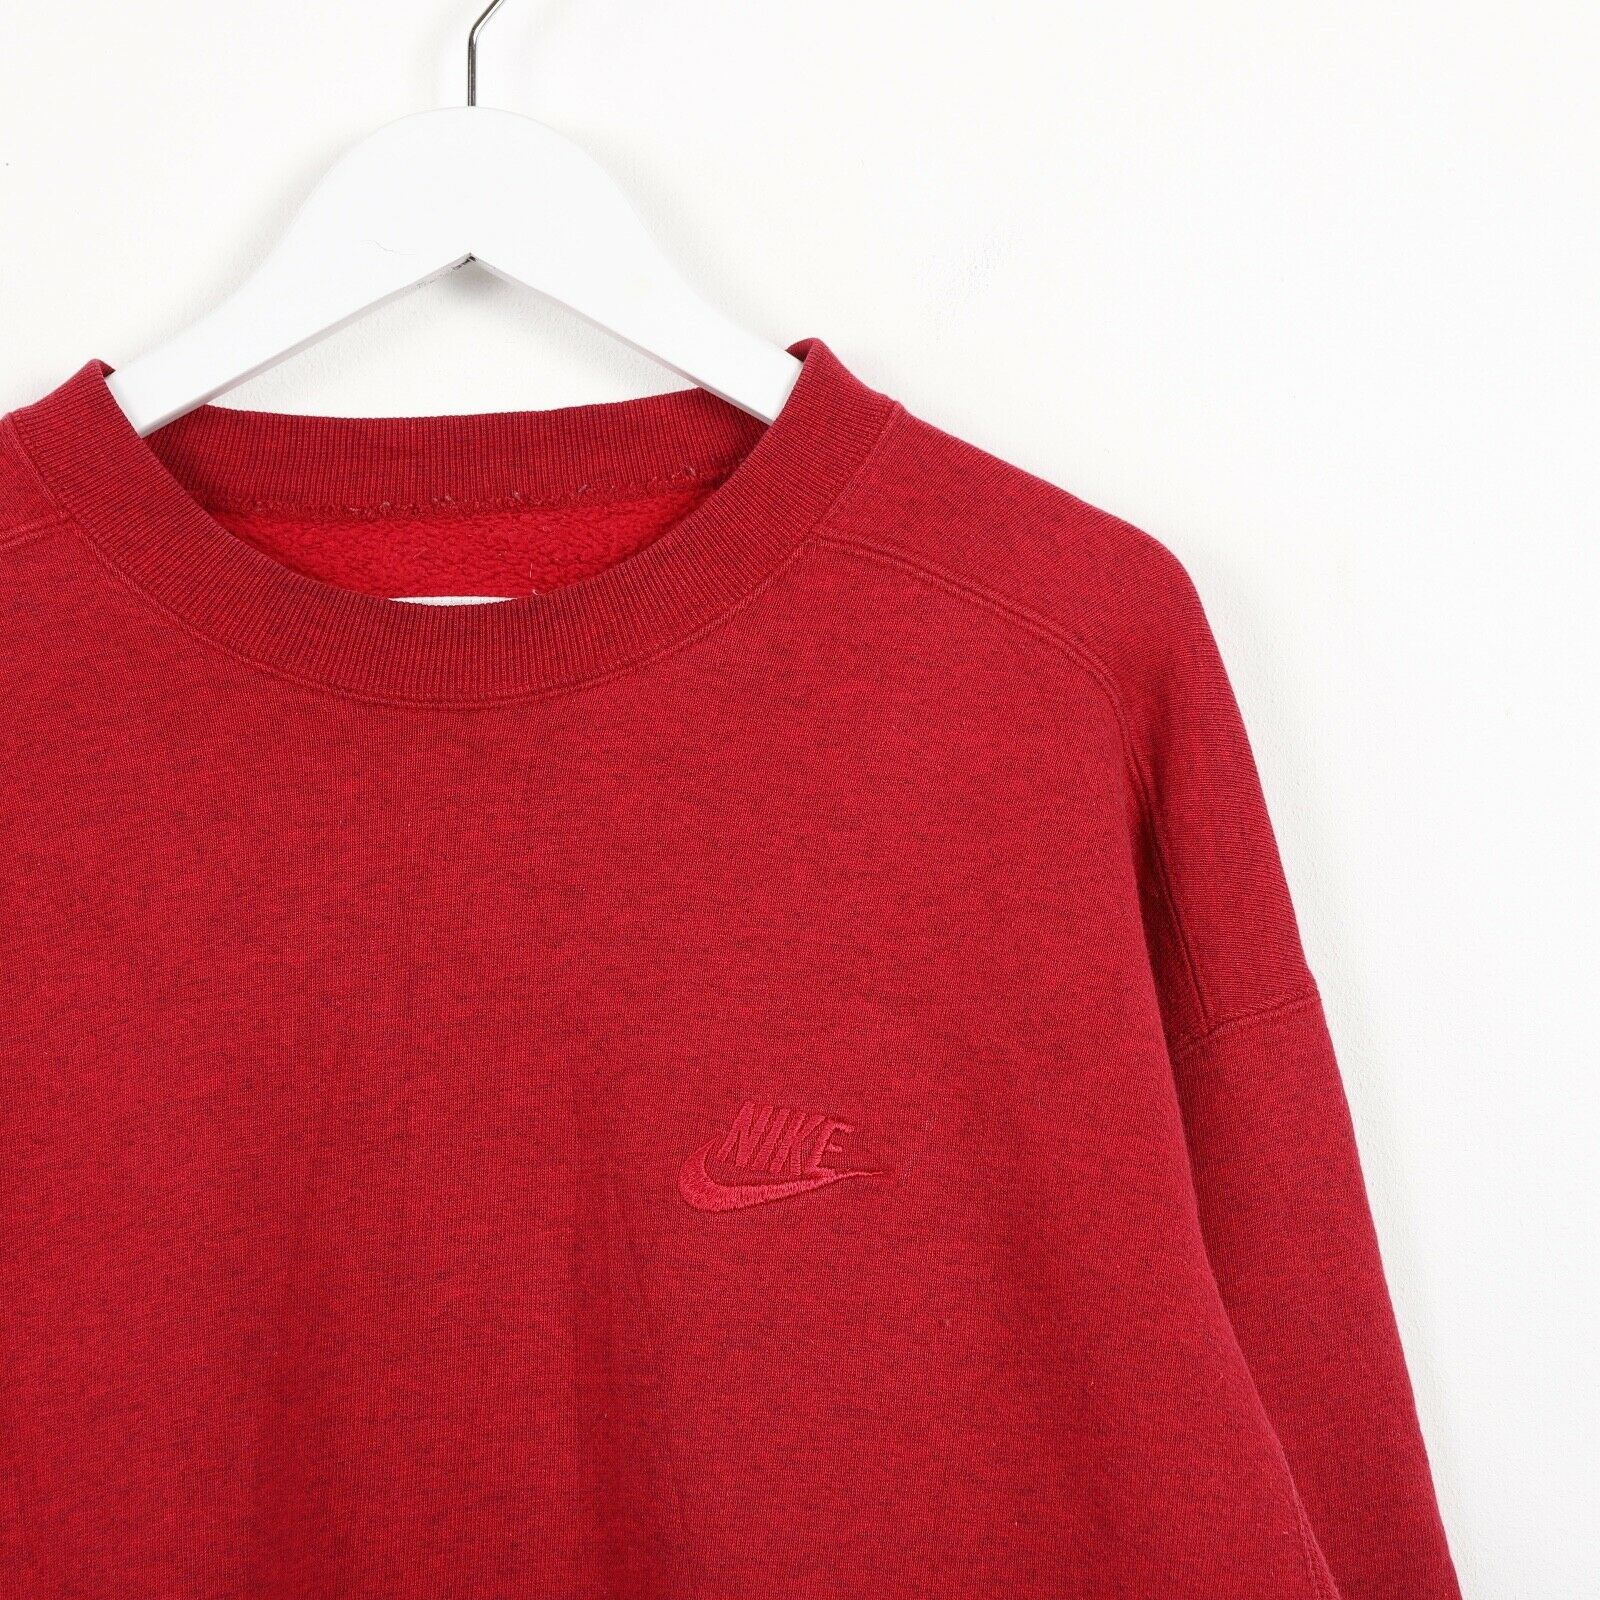 Vintage 90s NIKE Small Logo Sweatshirt Jumper Red Medium M